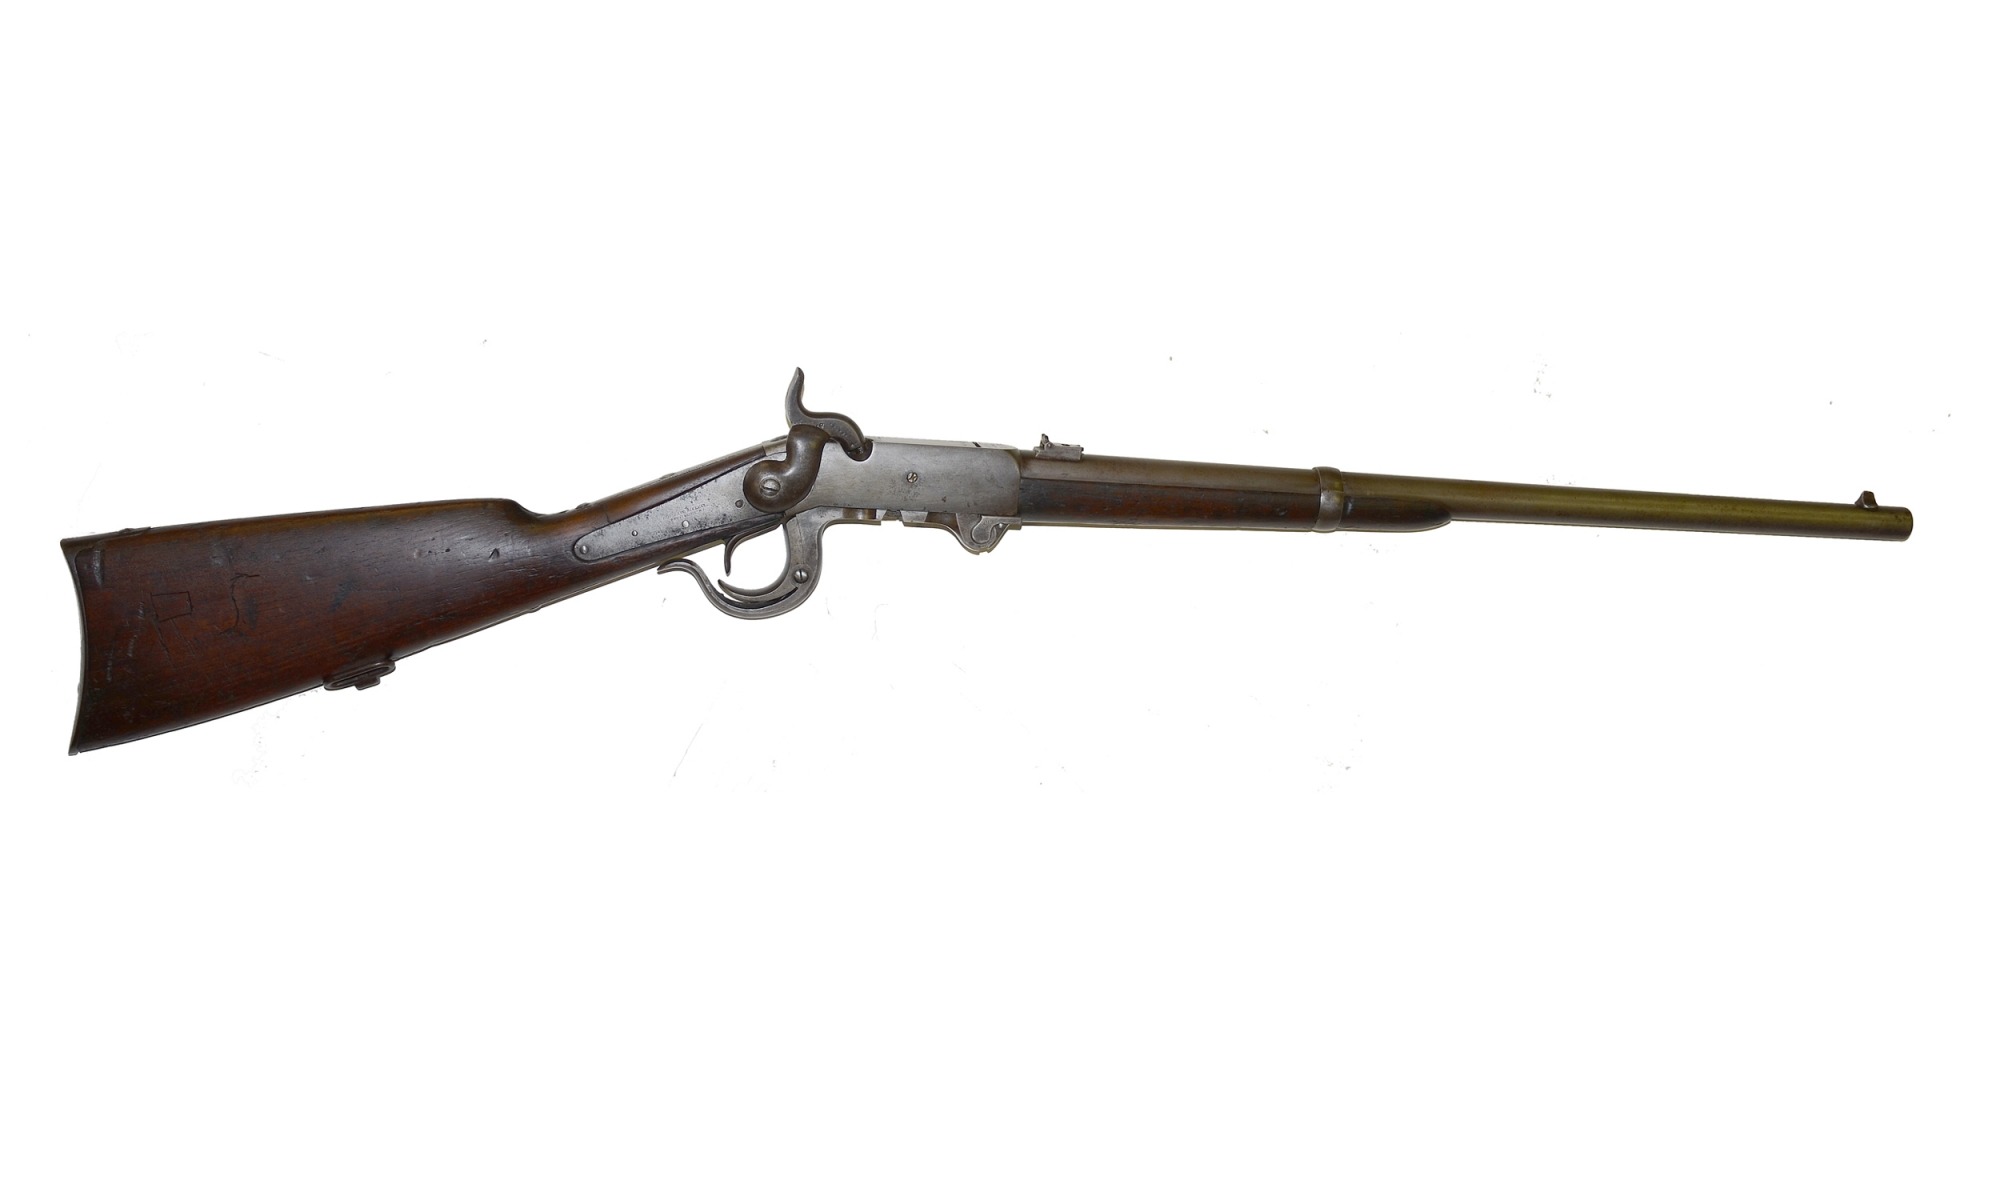 5TH MODEL BURNSIDE CARBINE IN FAIR TO GOOD CONDITION